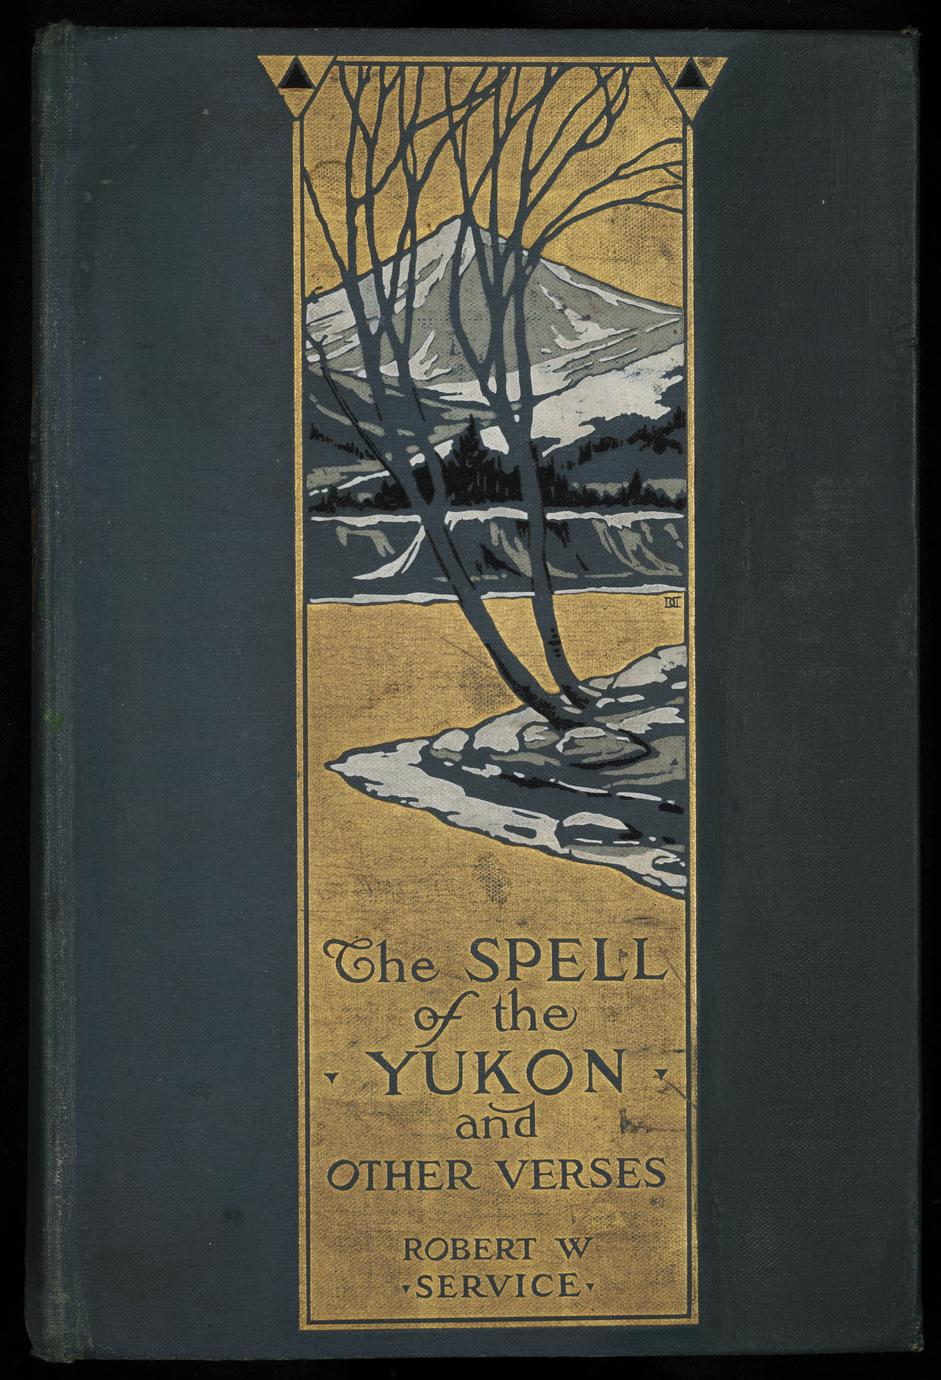 The spell of the Yukon, and other verses (1 of 2)